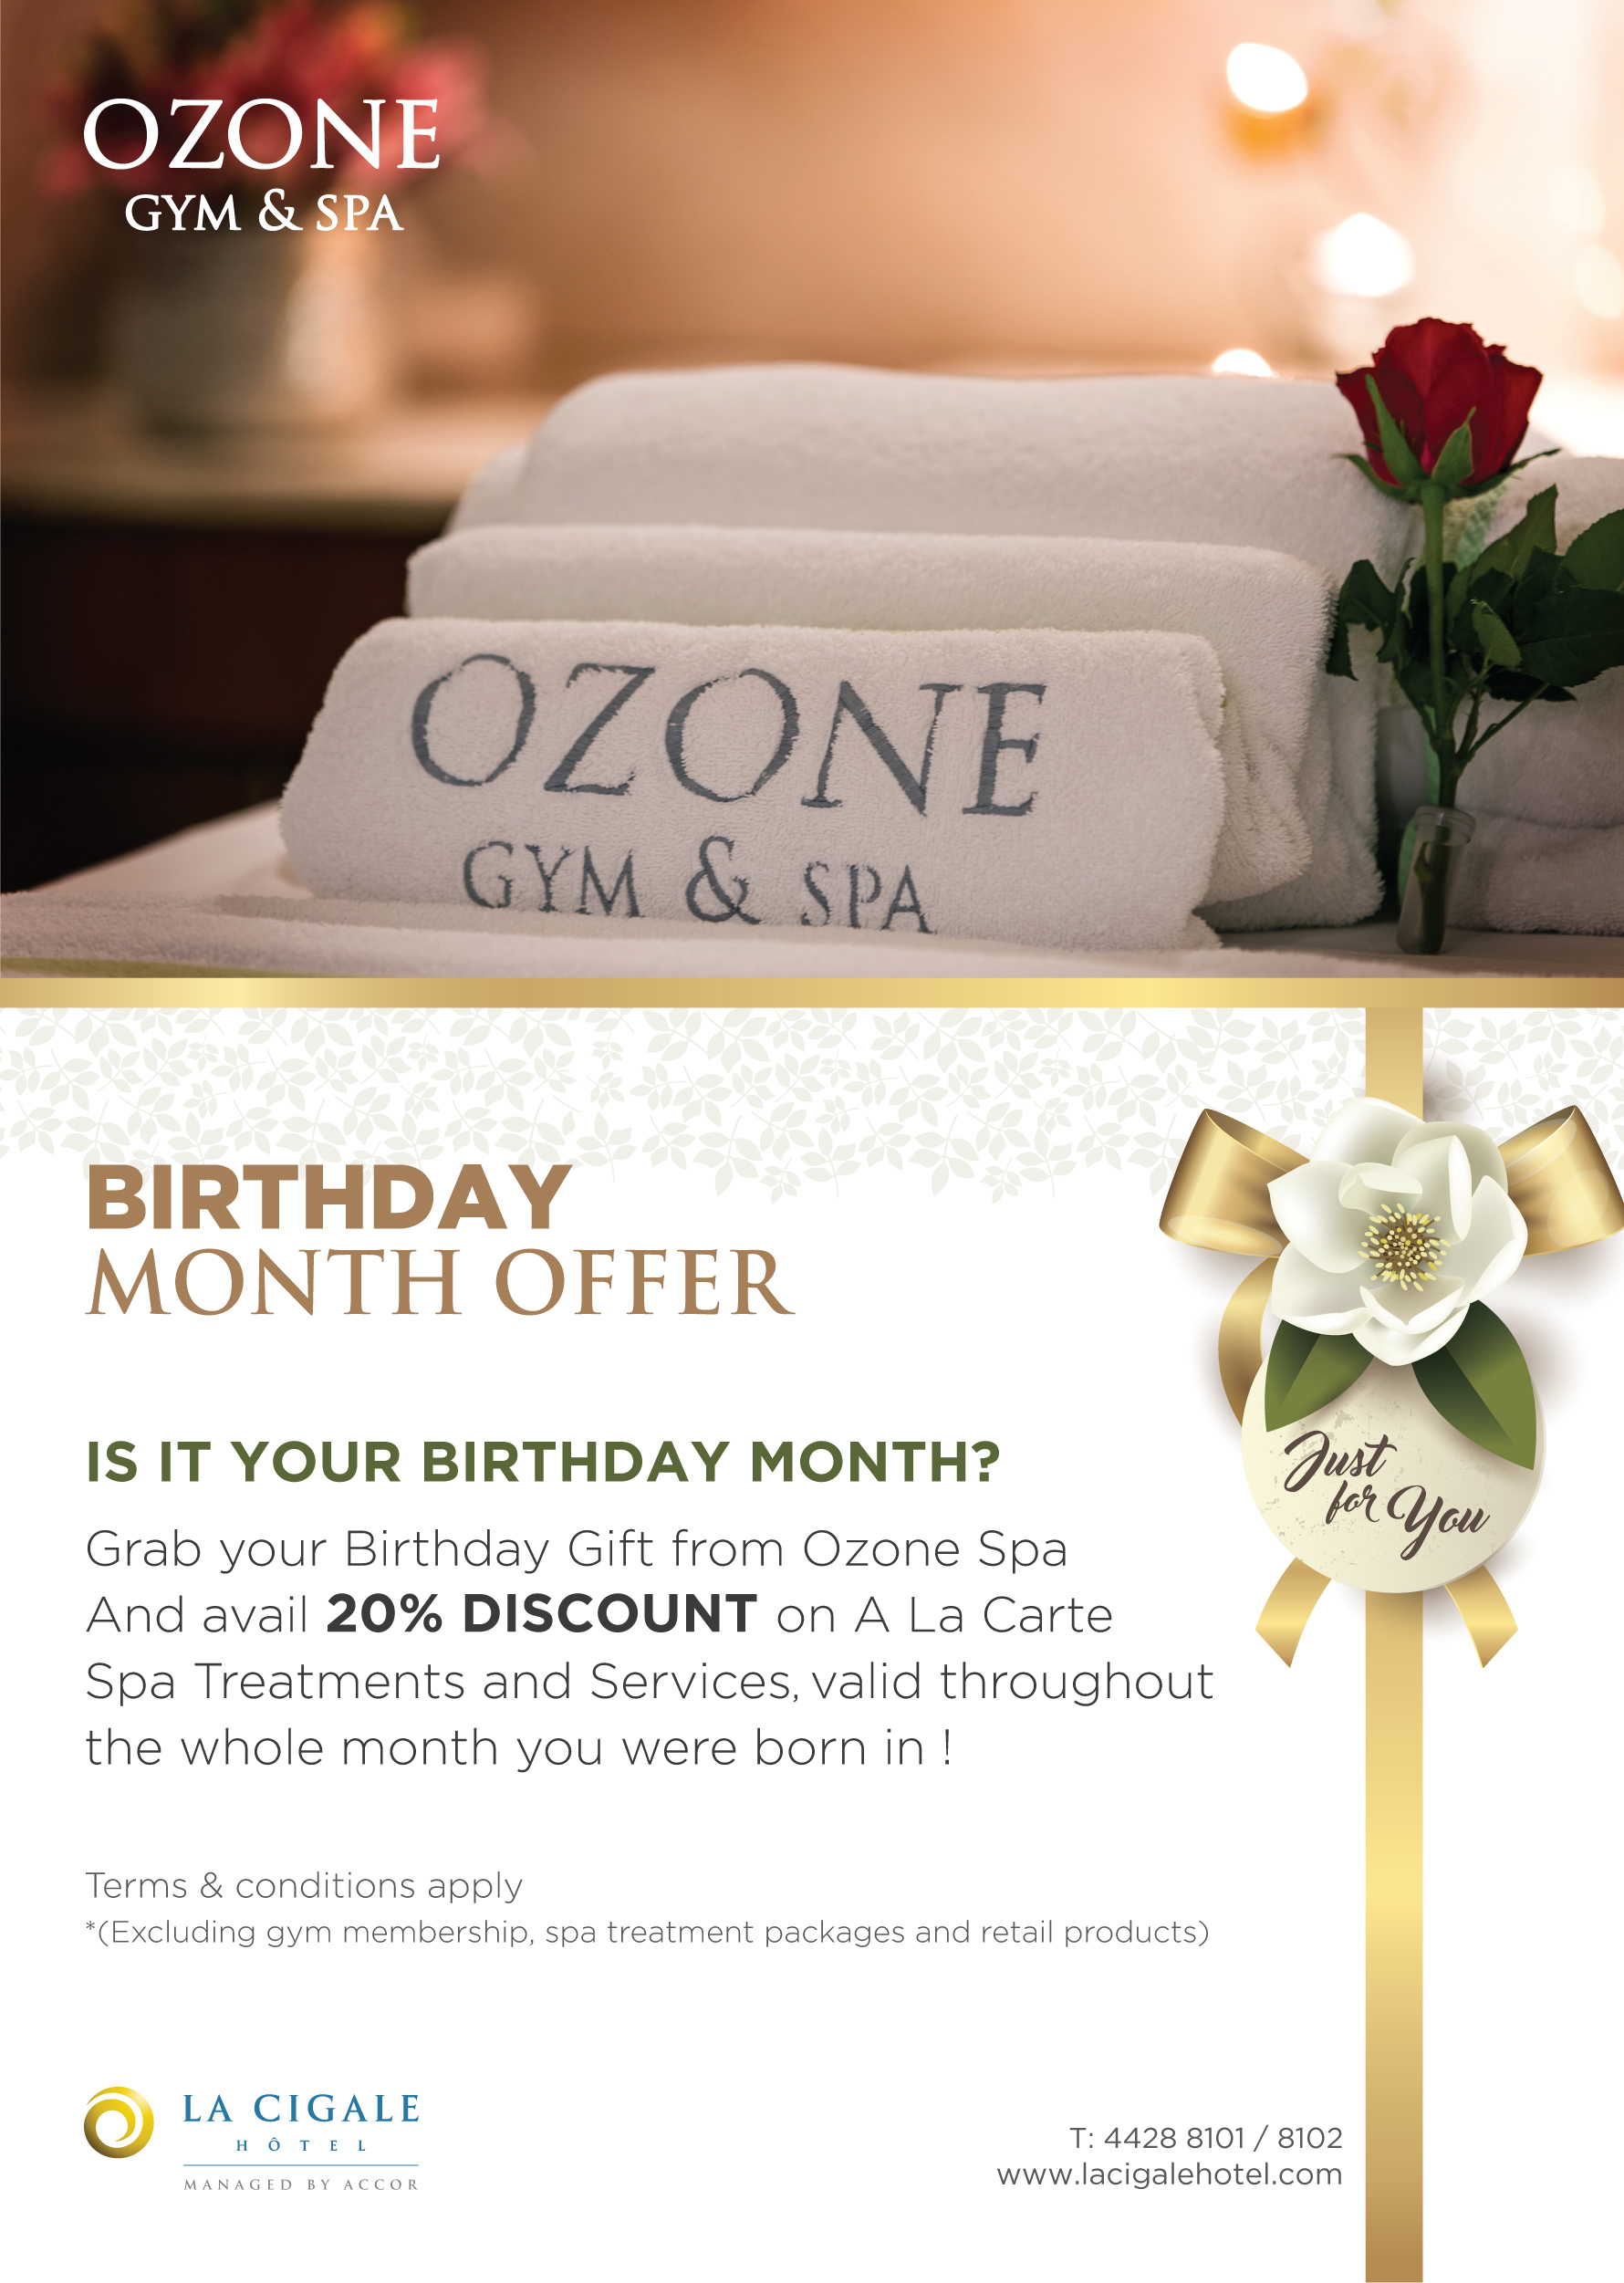 La Cigale Hotel - Birthday Month Offer - 20% Discount